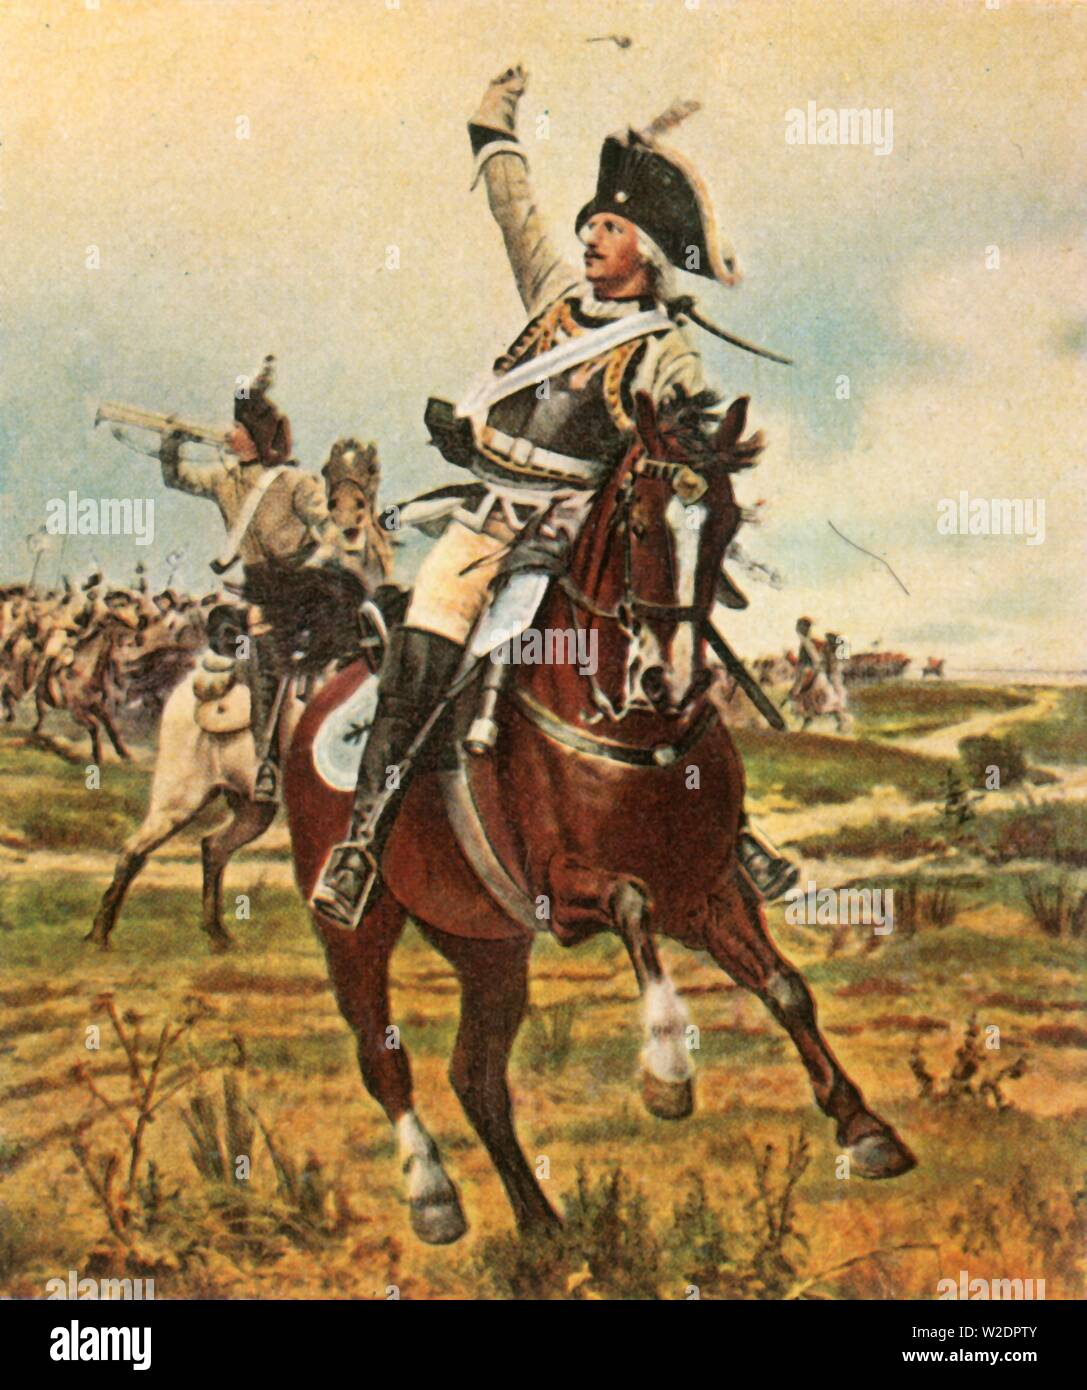 """General Seydlitz gives the signal to advance at Rossbach, 5 November 1757, (1936). At the Battle of Rossbach (in Germany), Prussian cavalry officer Friedrich Wilhelm von Seydlitz (1721-1773) and his men routed the French and Imperial armies. He is usually credited with developing the Hussar regiments of Frederick the Great's Army. From """"Bilder Deutscher Geschichte"""", (Pictures of German History), No.12, cigarette card album. [Cigaretten-Bilderdienst, Altona-Bahrenfeld, Hamburg, Germany, 1936] - Stock Image"""